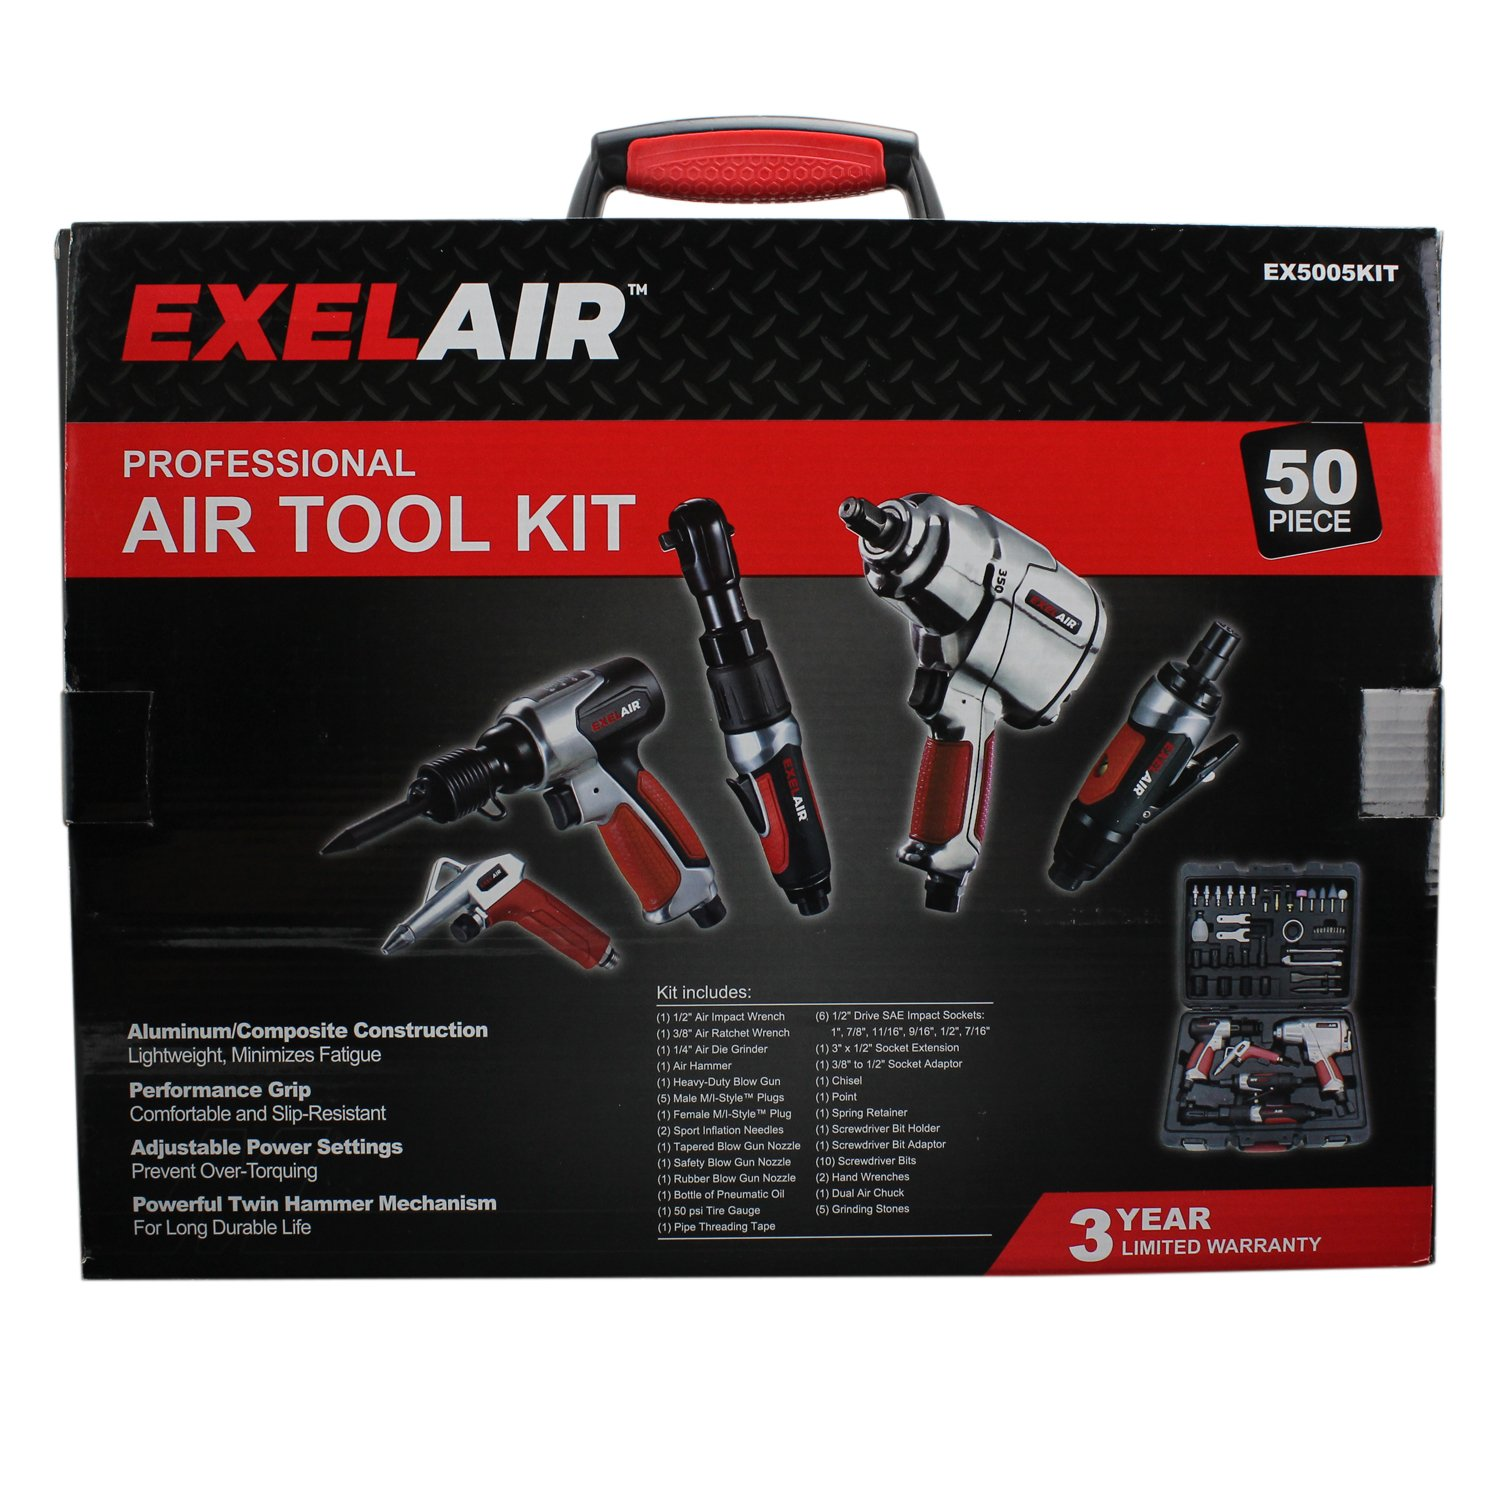 50 Piece Professional Air Tool Kit by EXELAIR